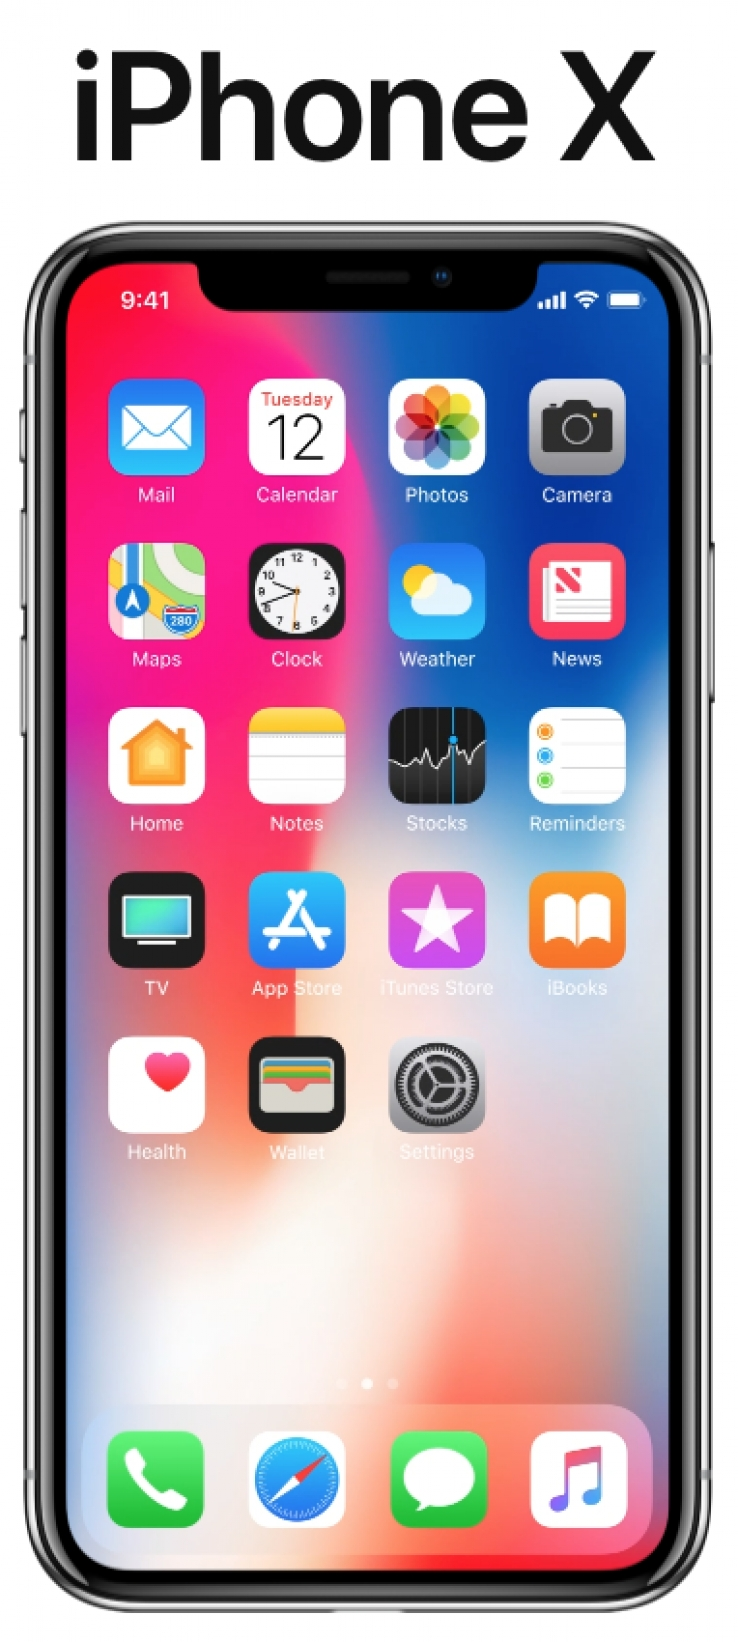 a397ccac9c2 iTWire - iPhone X goes on sale at last via pre-order: Vodafone ...